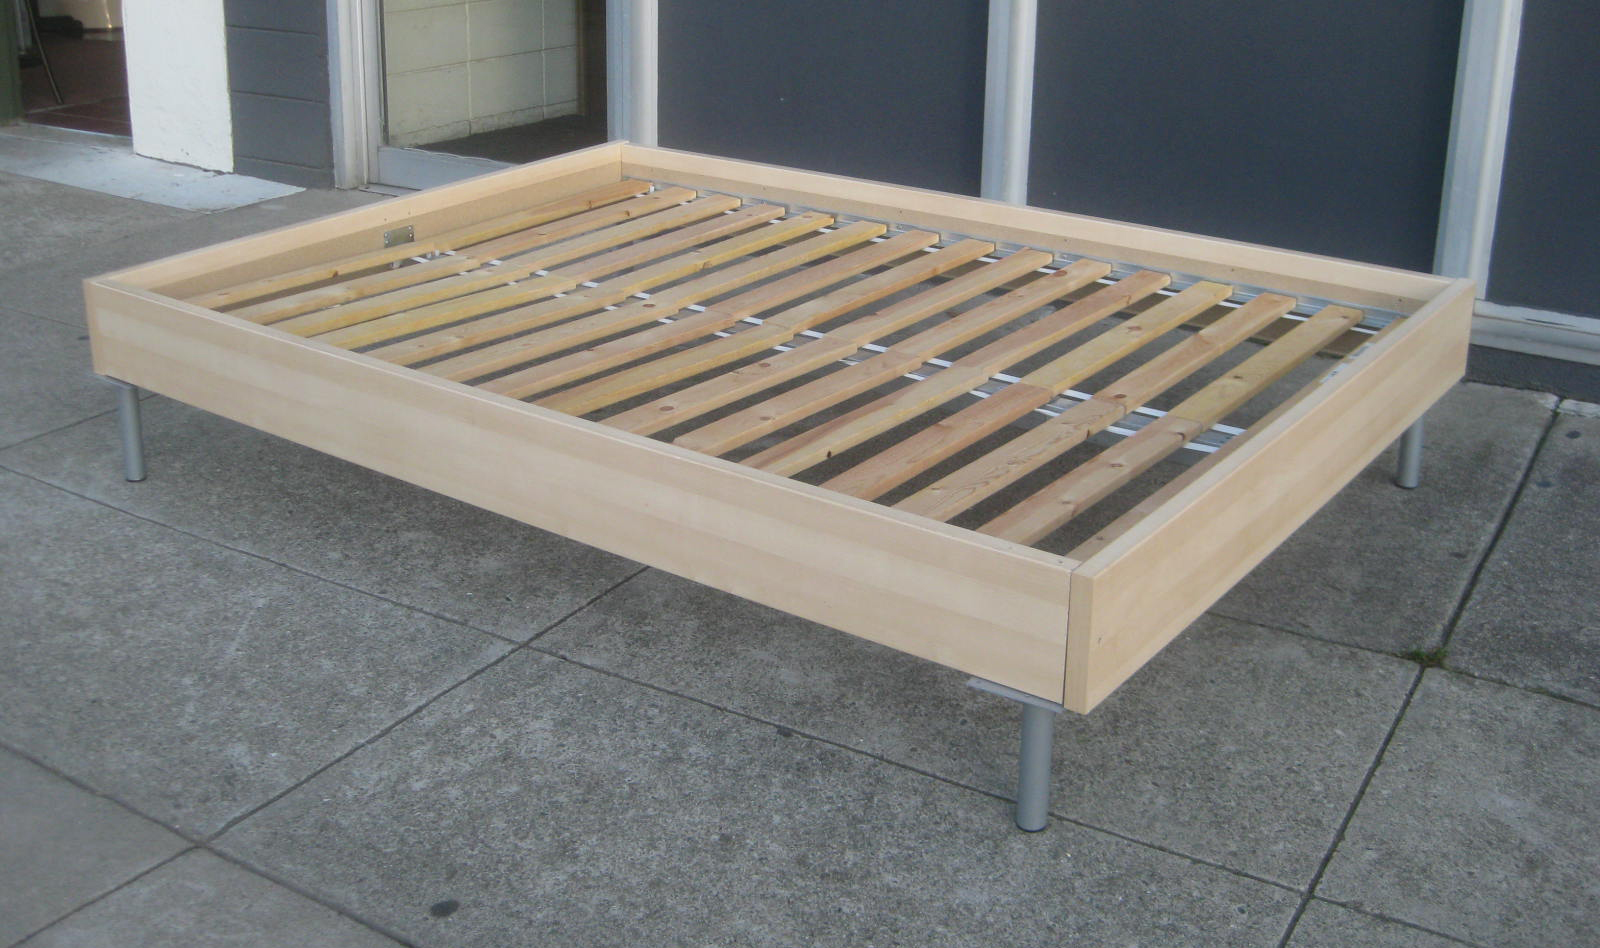 ... FURNITURE & COLLECTIBLES: SOLD - Full Sized Platform Bed Frame - $85